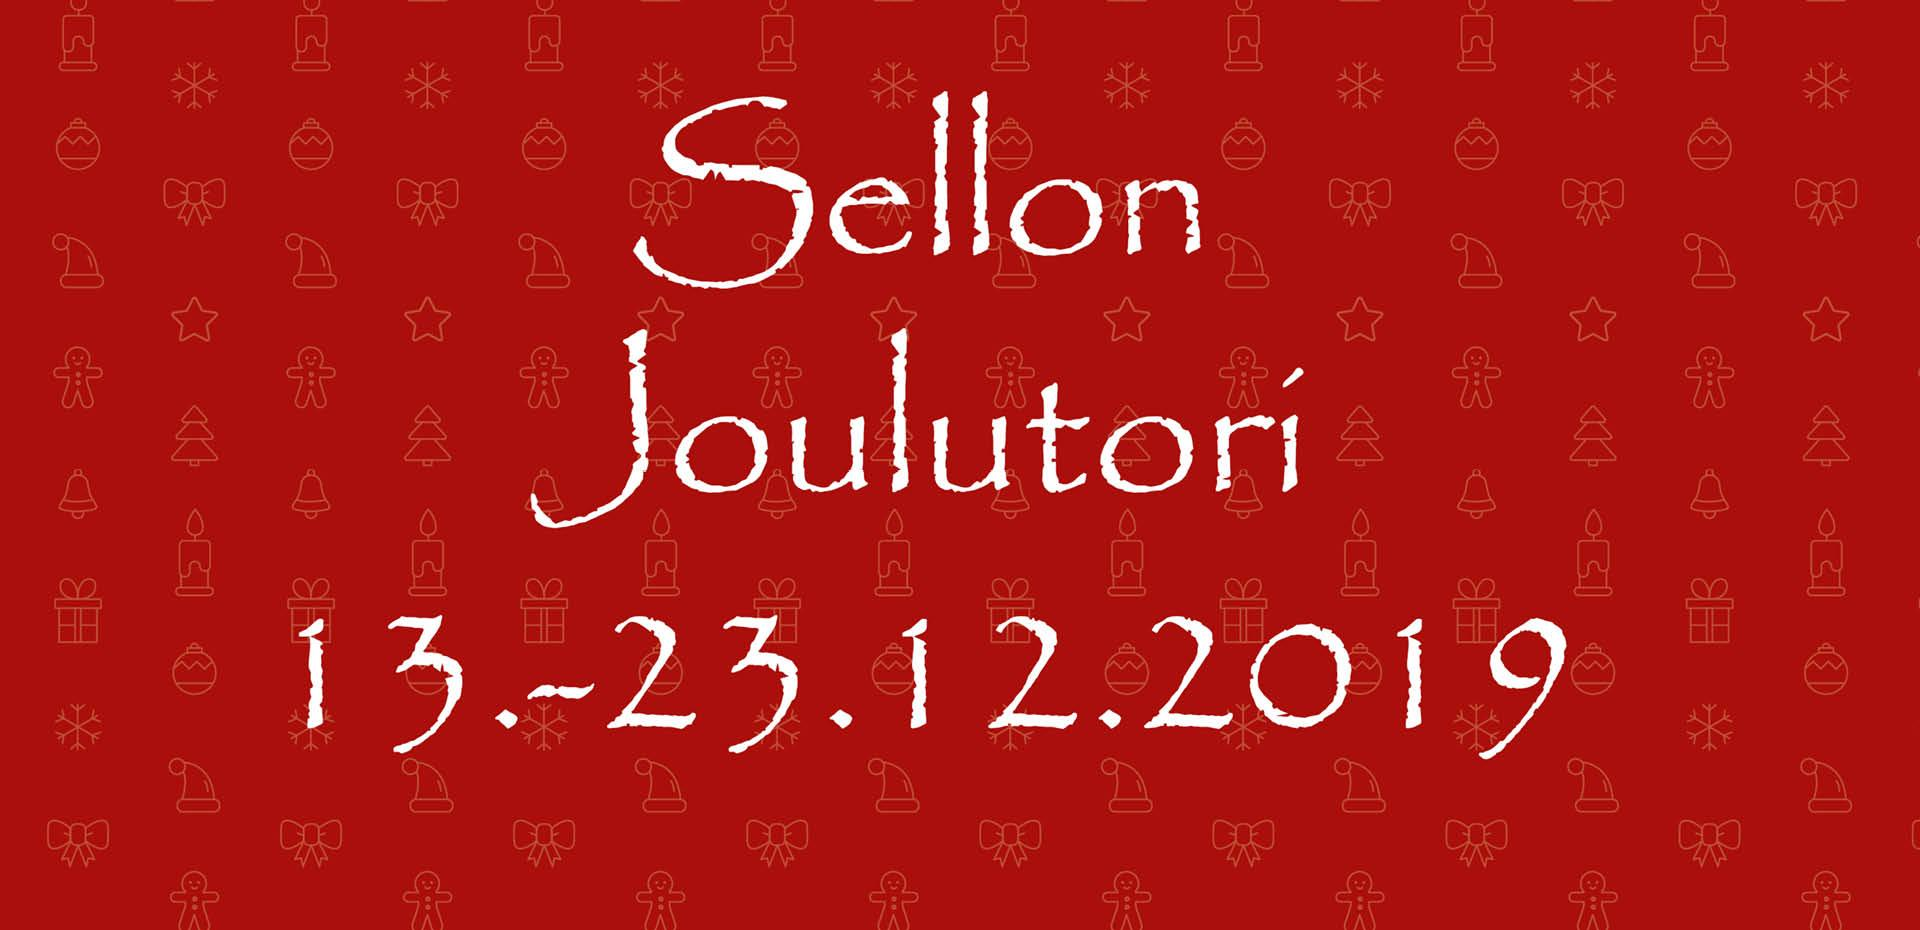 Sellon Joulutori 13.-23.12.